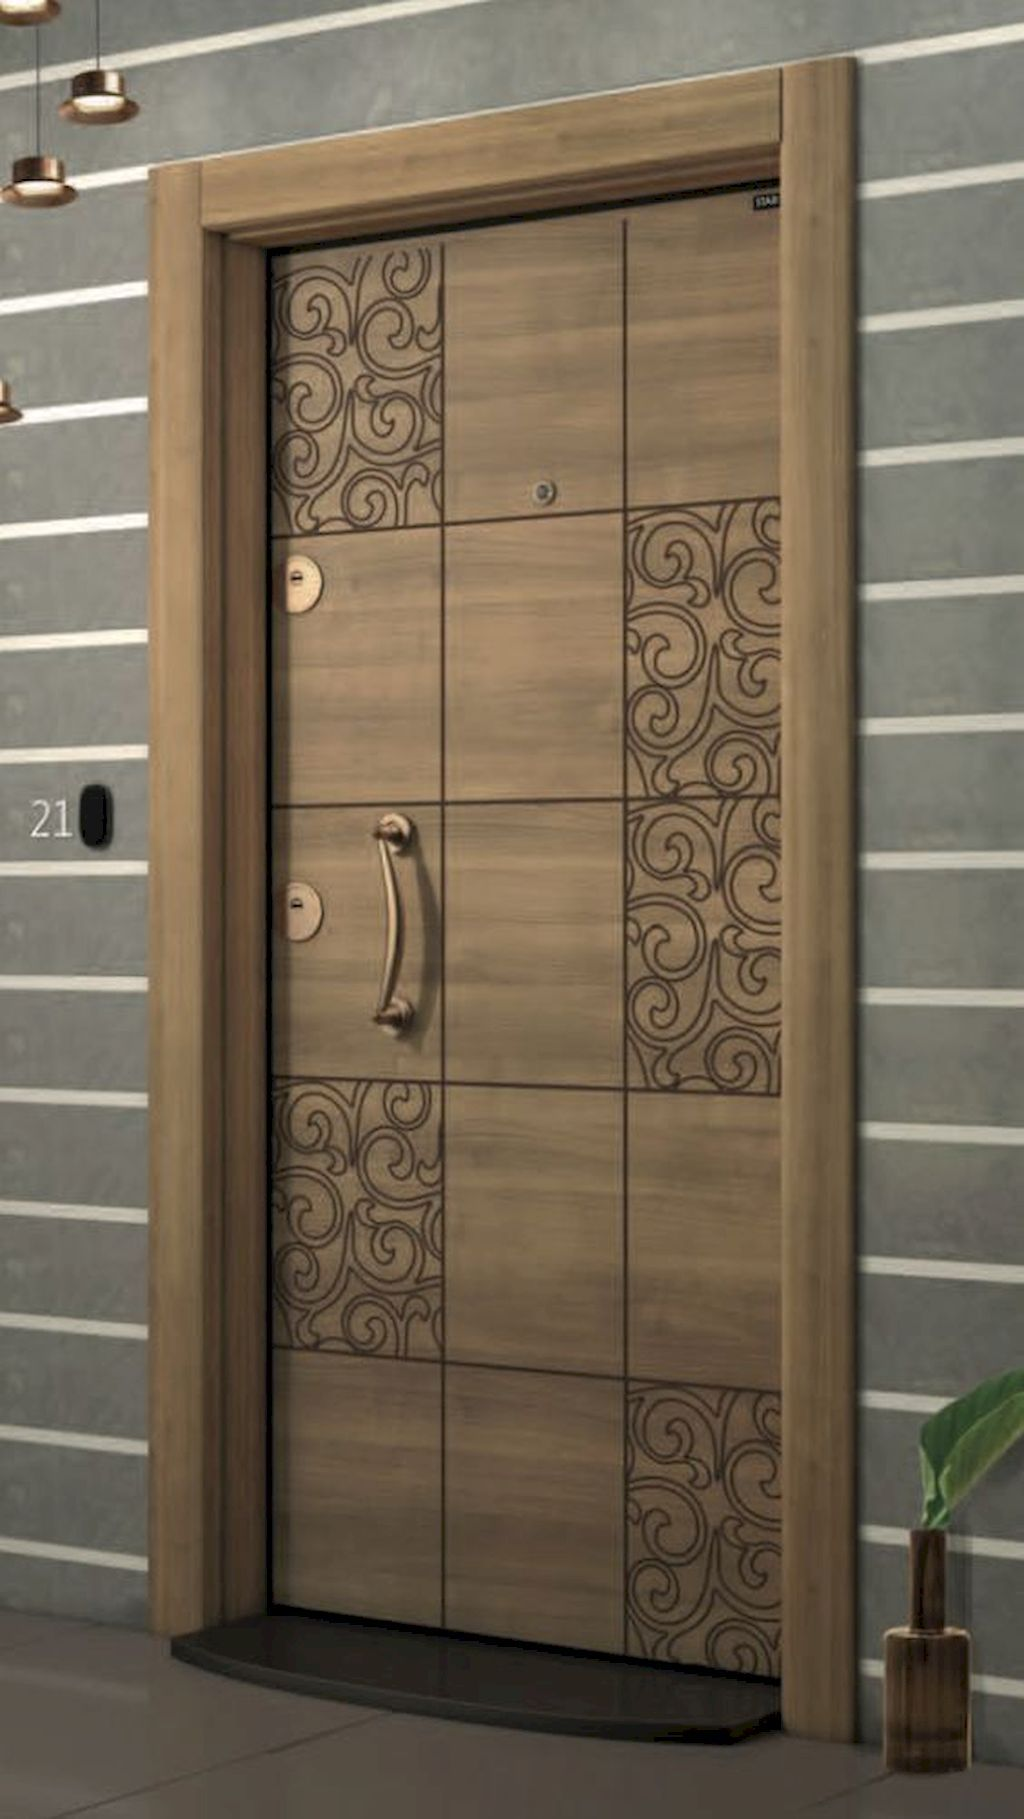 20 Best Modern Door Designs From Wood: Great 10 Ideas For A Special Entrance To Your Home